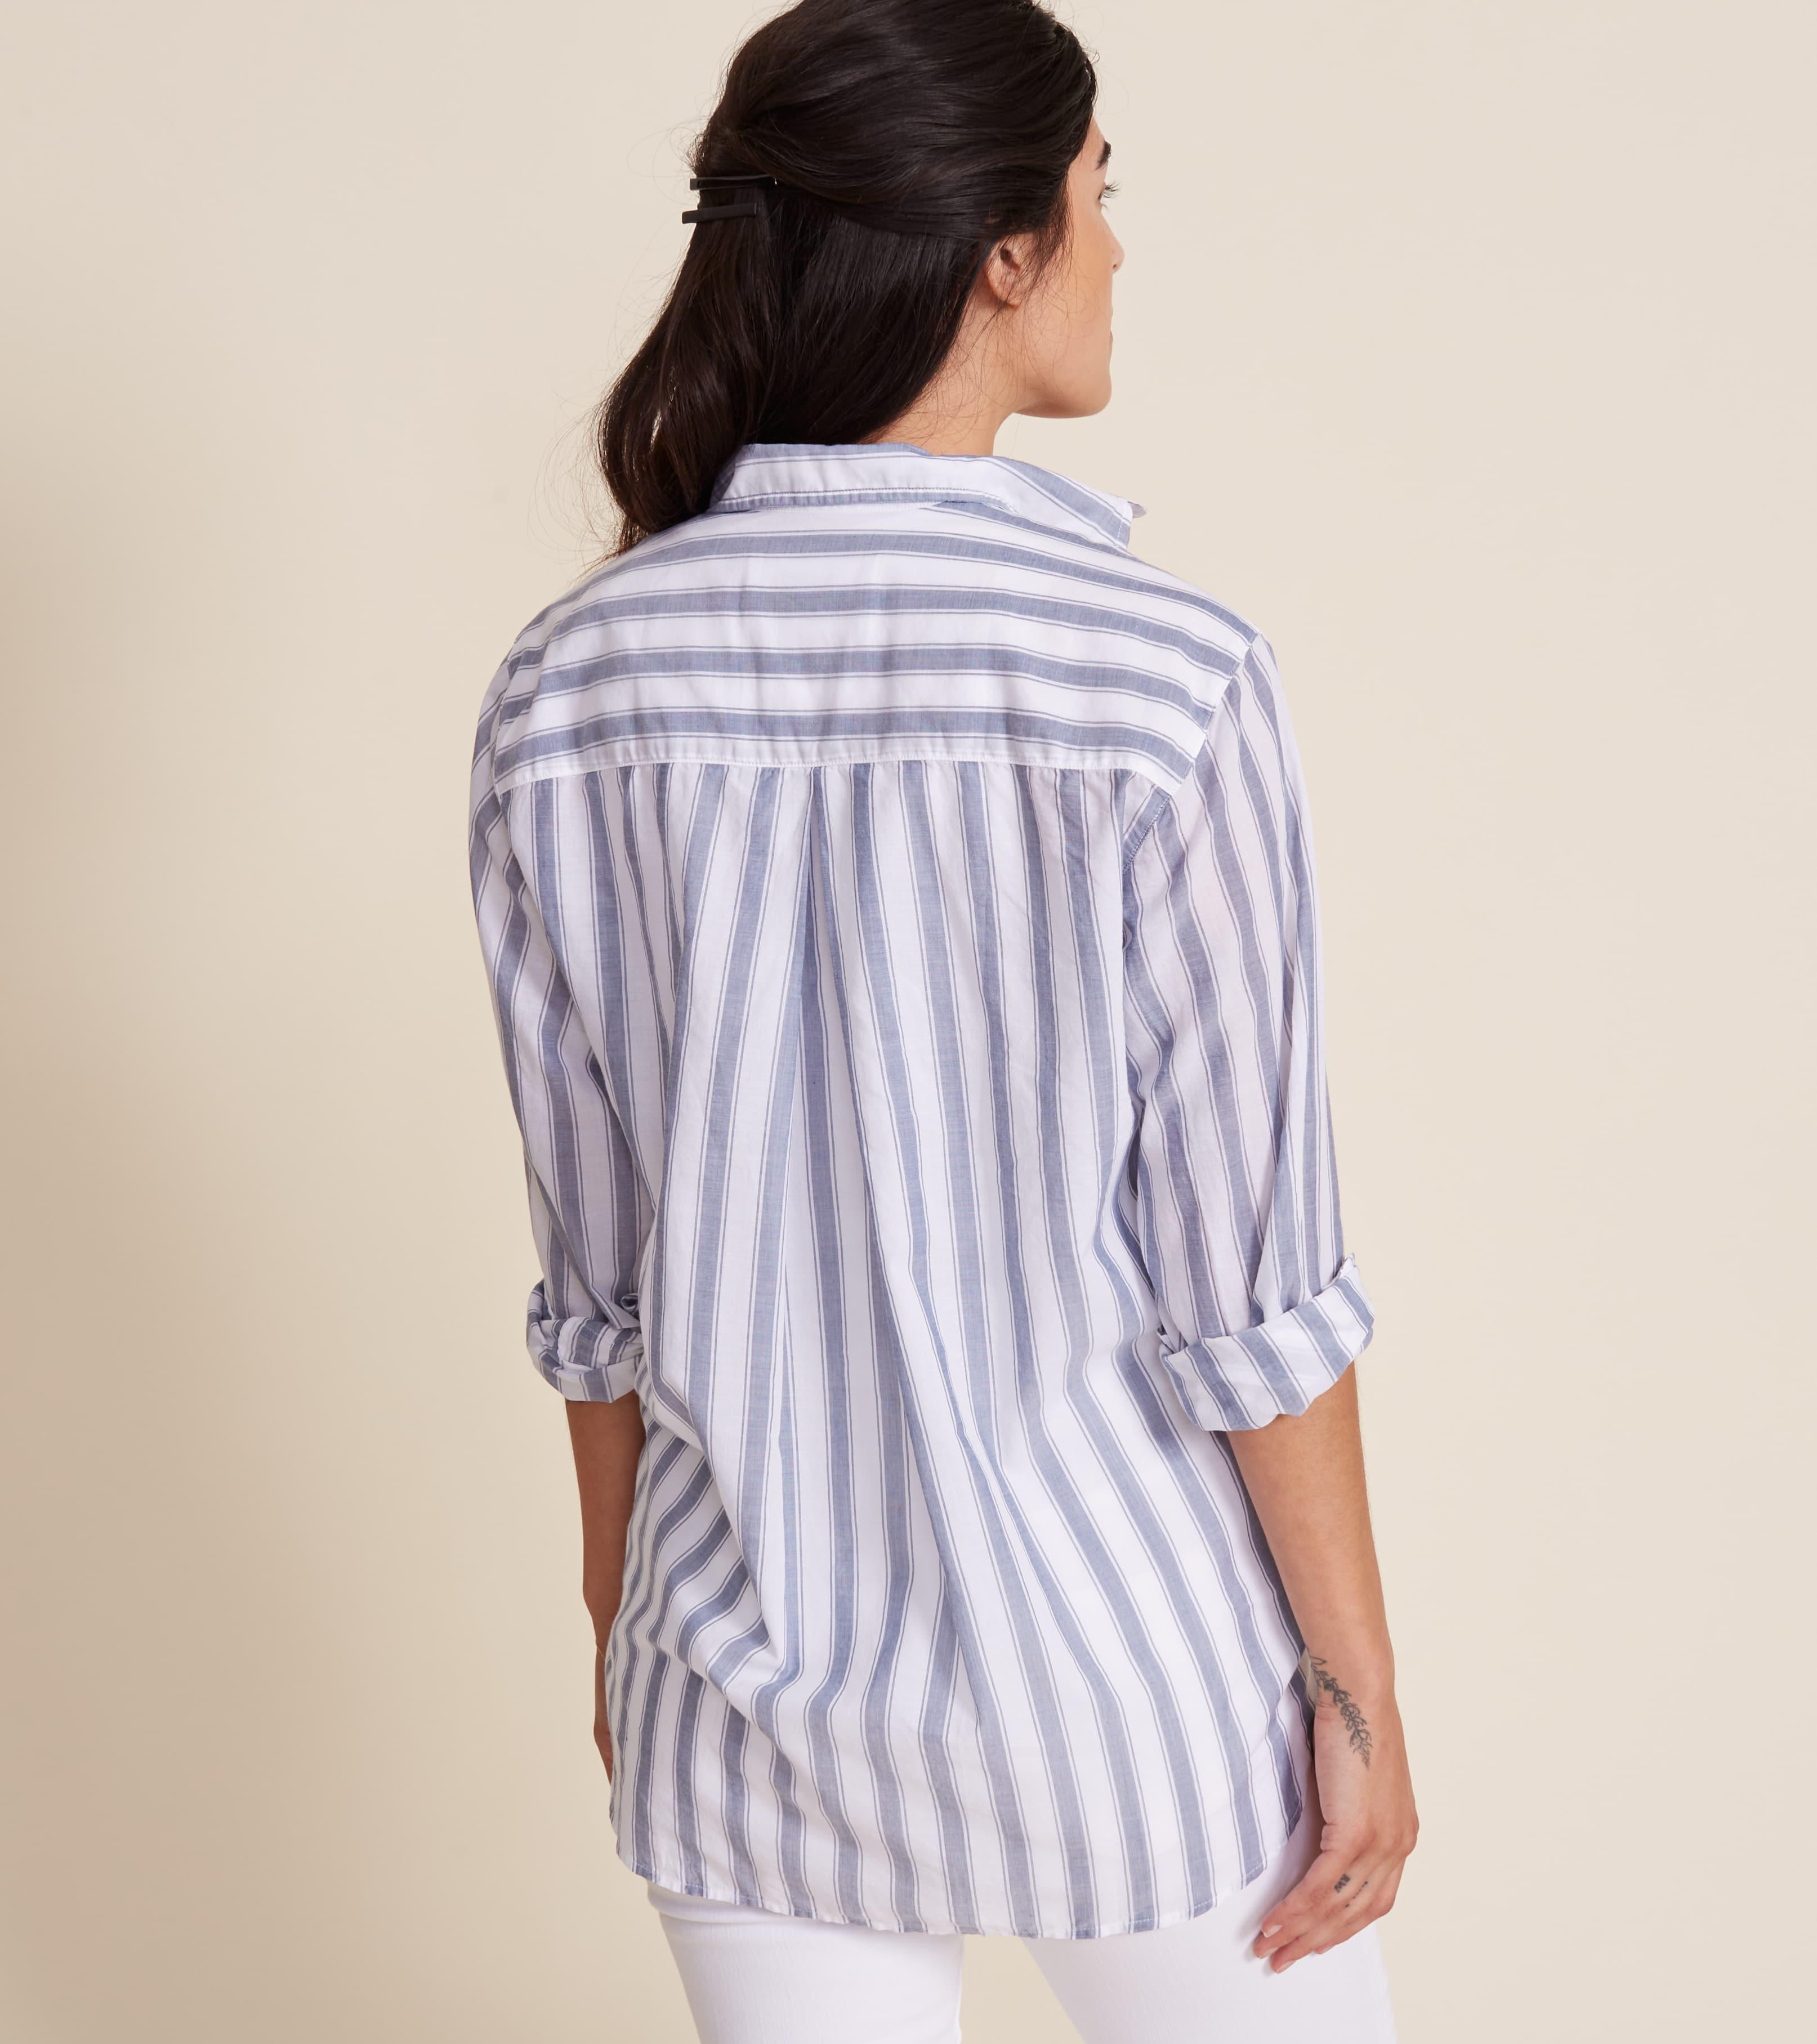 The Hero White with Thick Blue Stripe, Tissue Cotton Final Sale 1